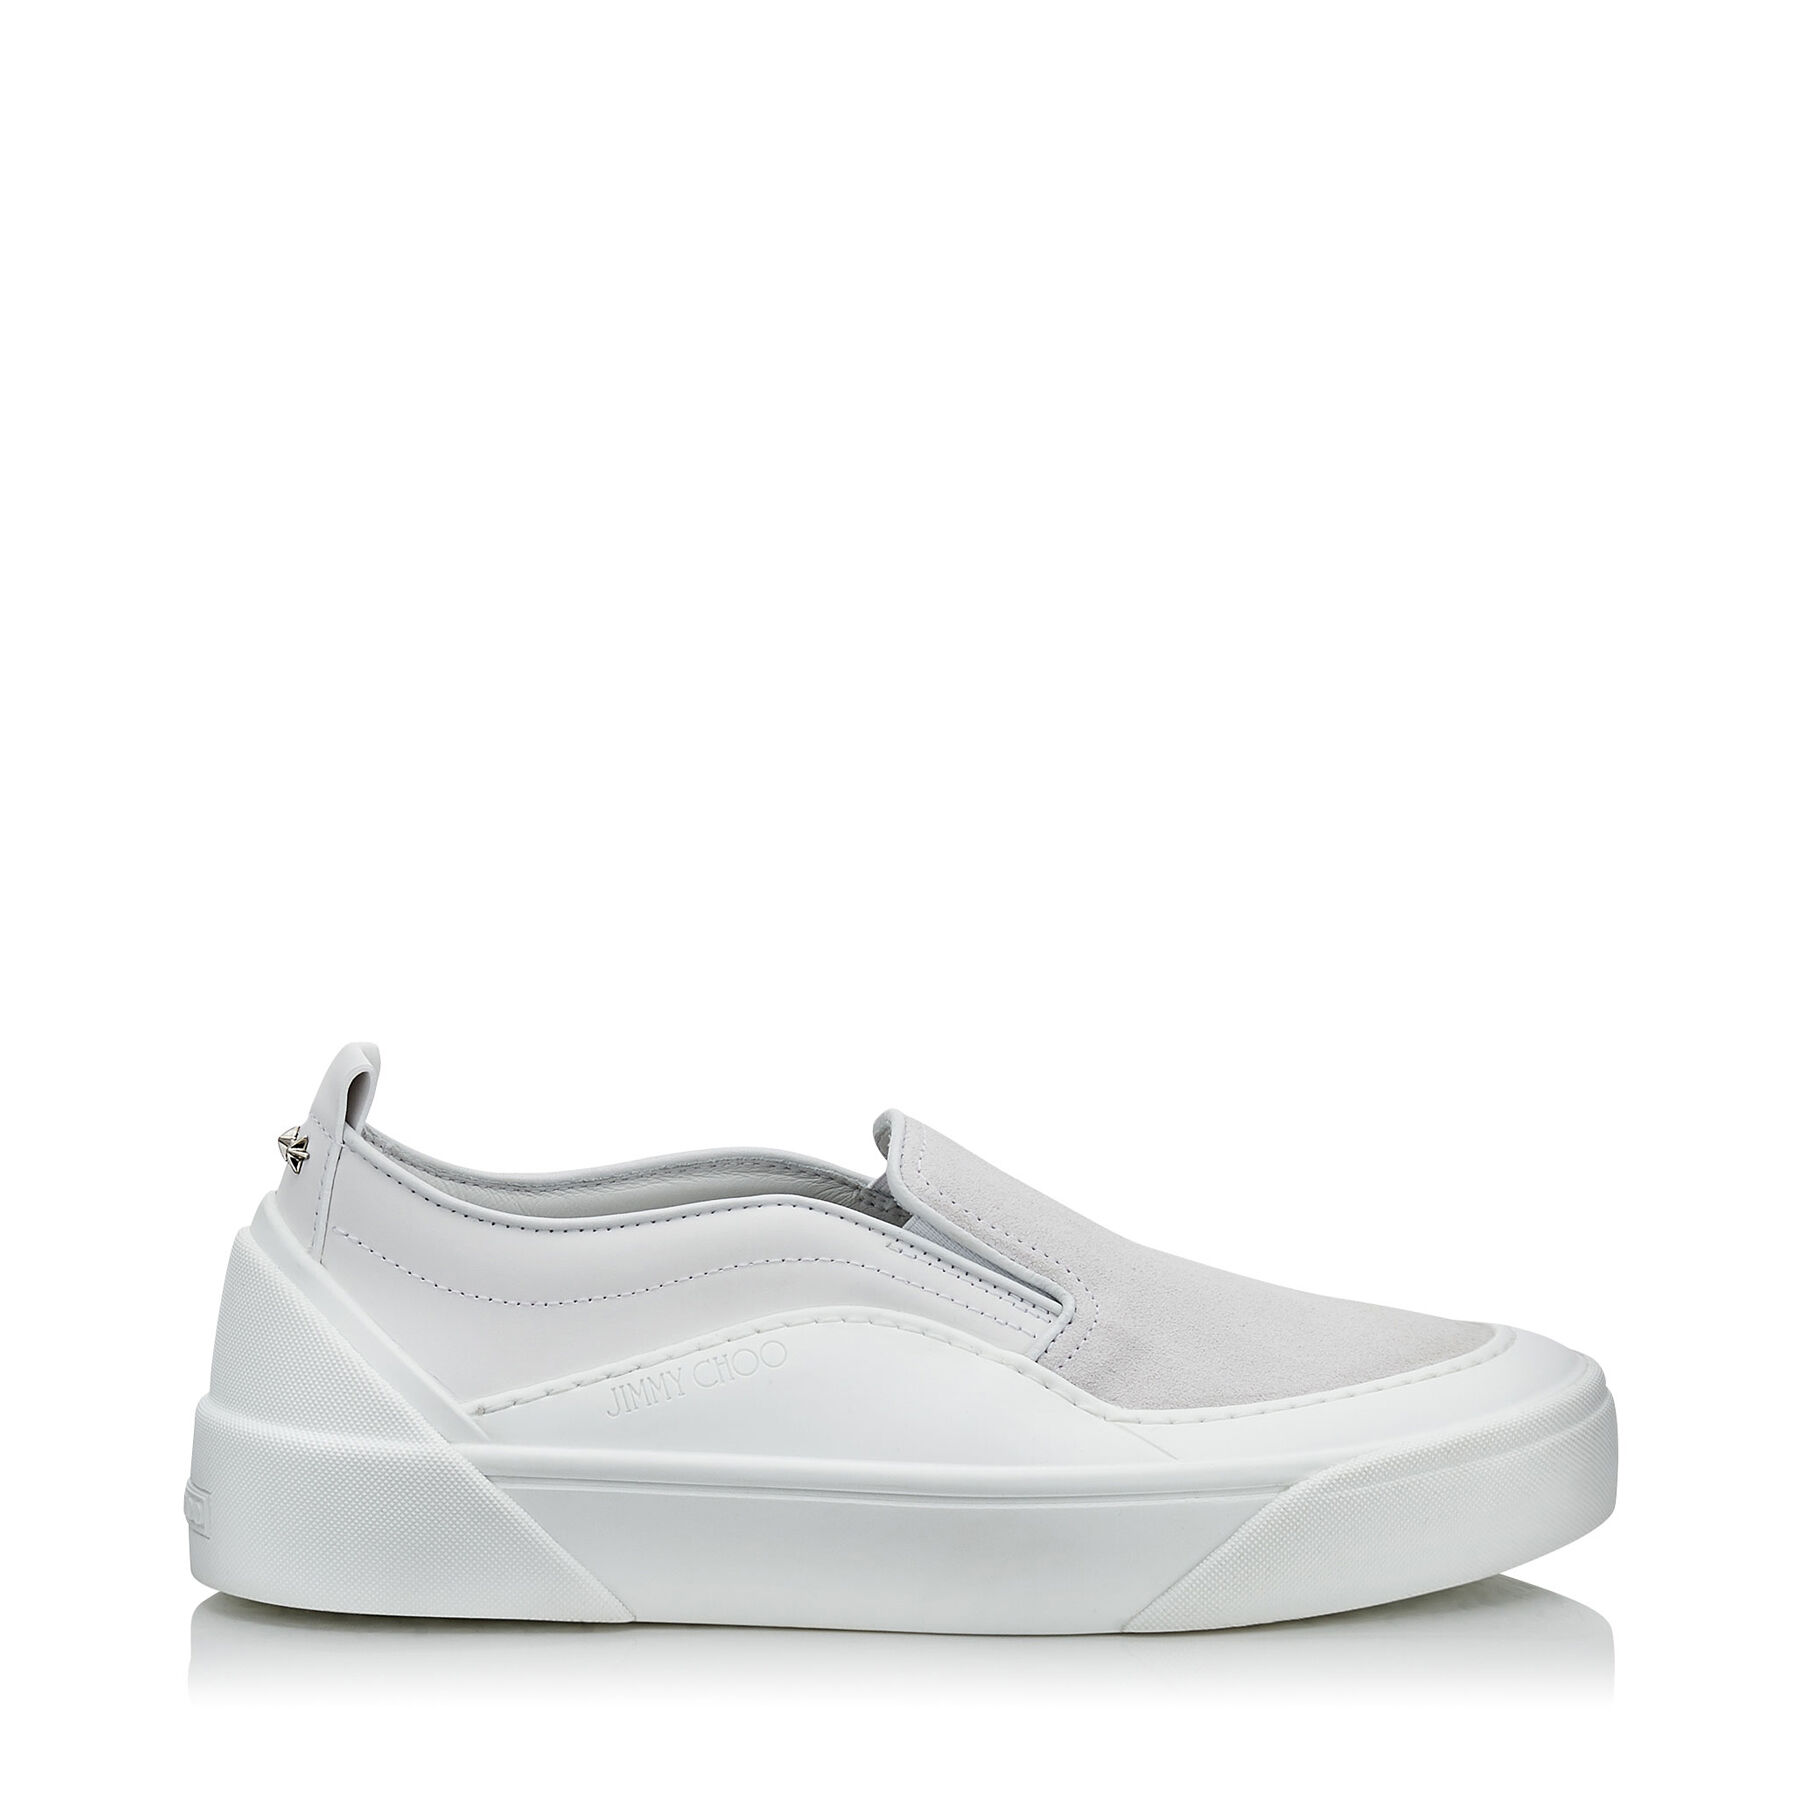 White Suede and Soft Leather Slip On